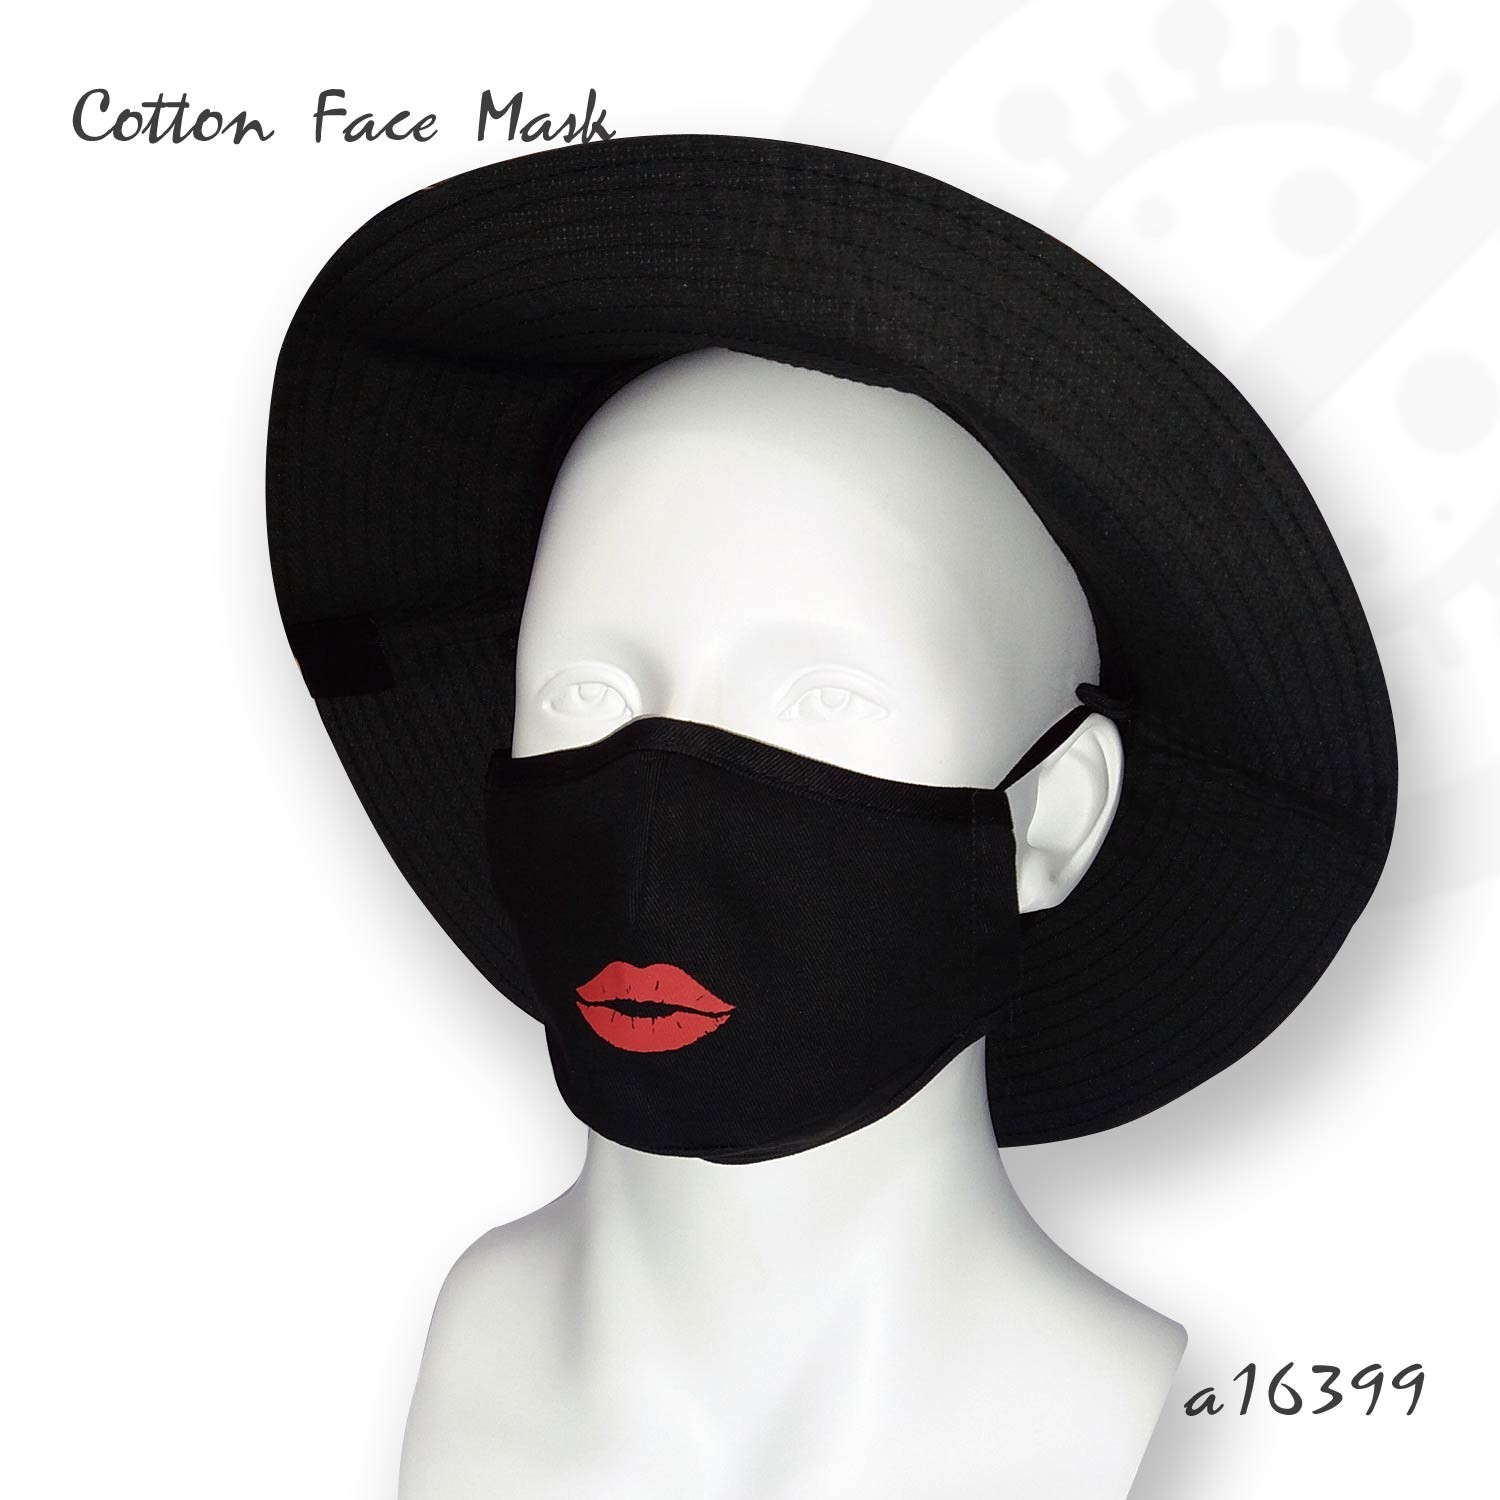 Cotton Face Mask with Lips Print